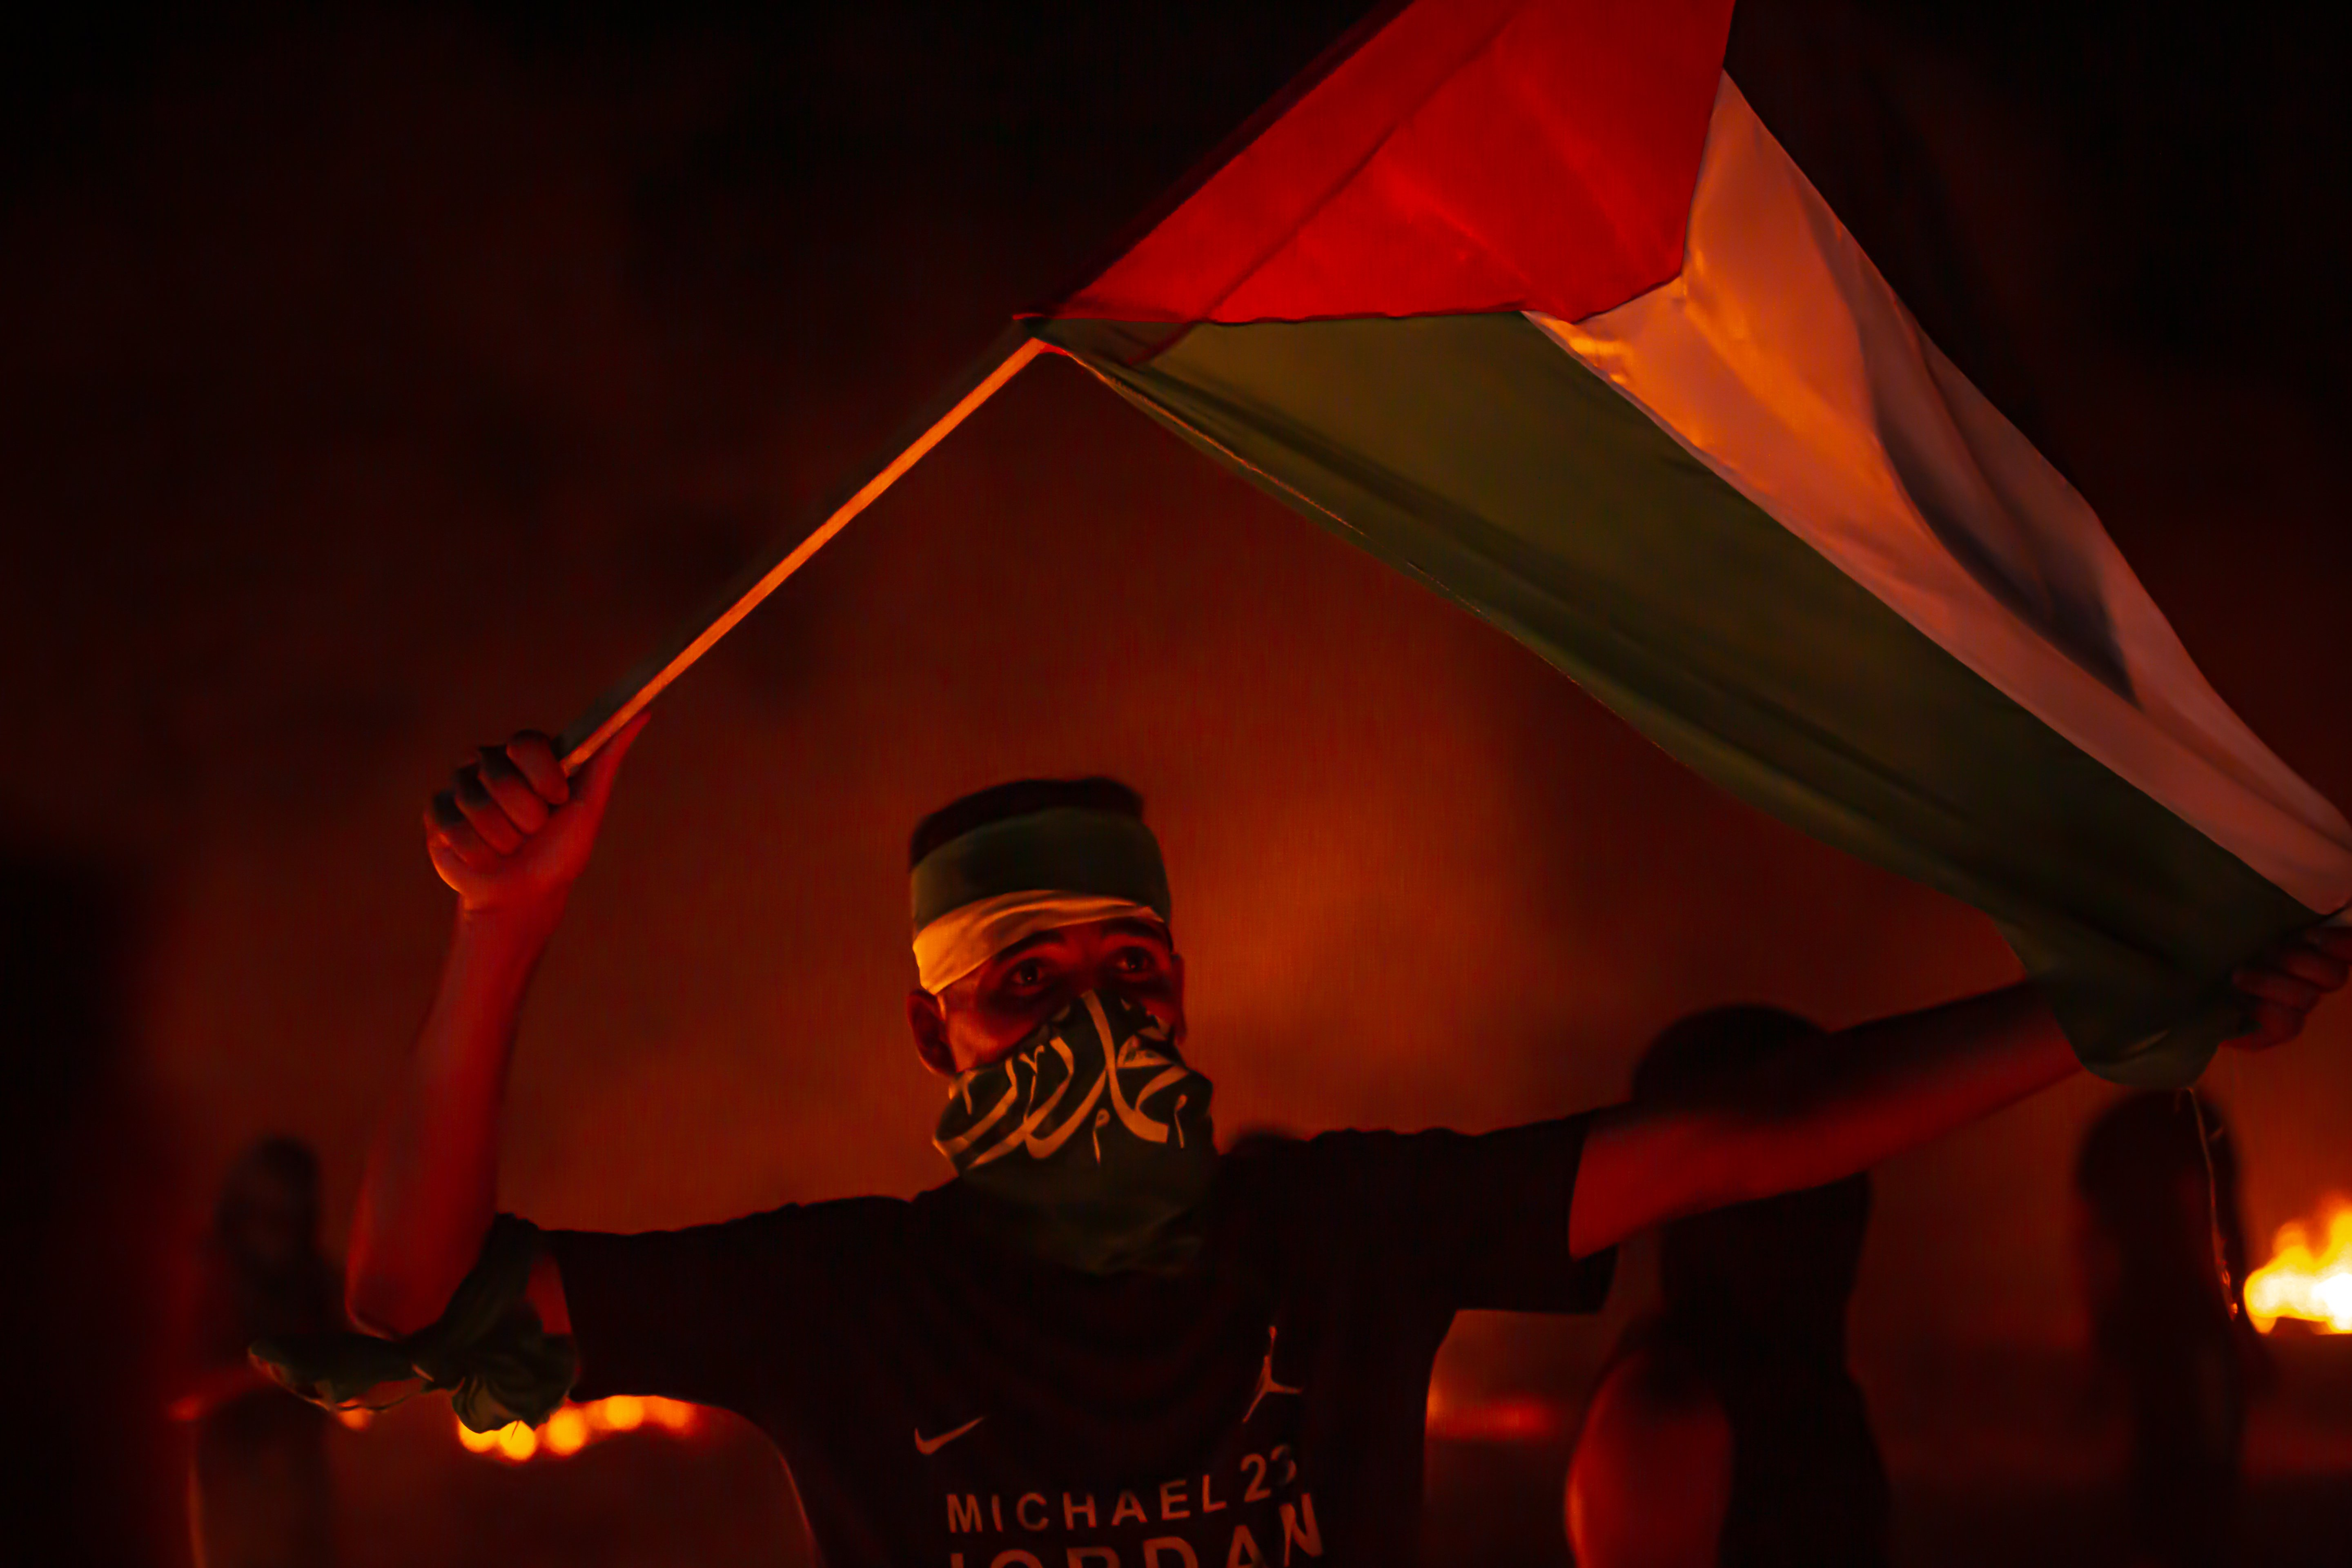 Israel strikes Hamas targets in Gaza strip after border clashes